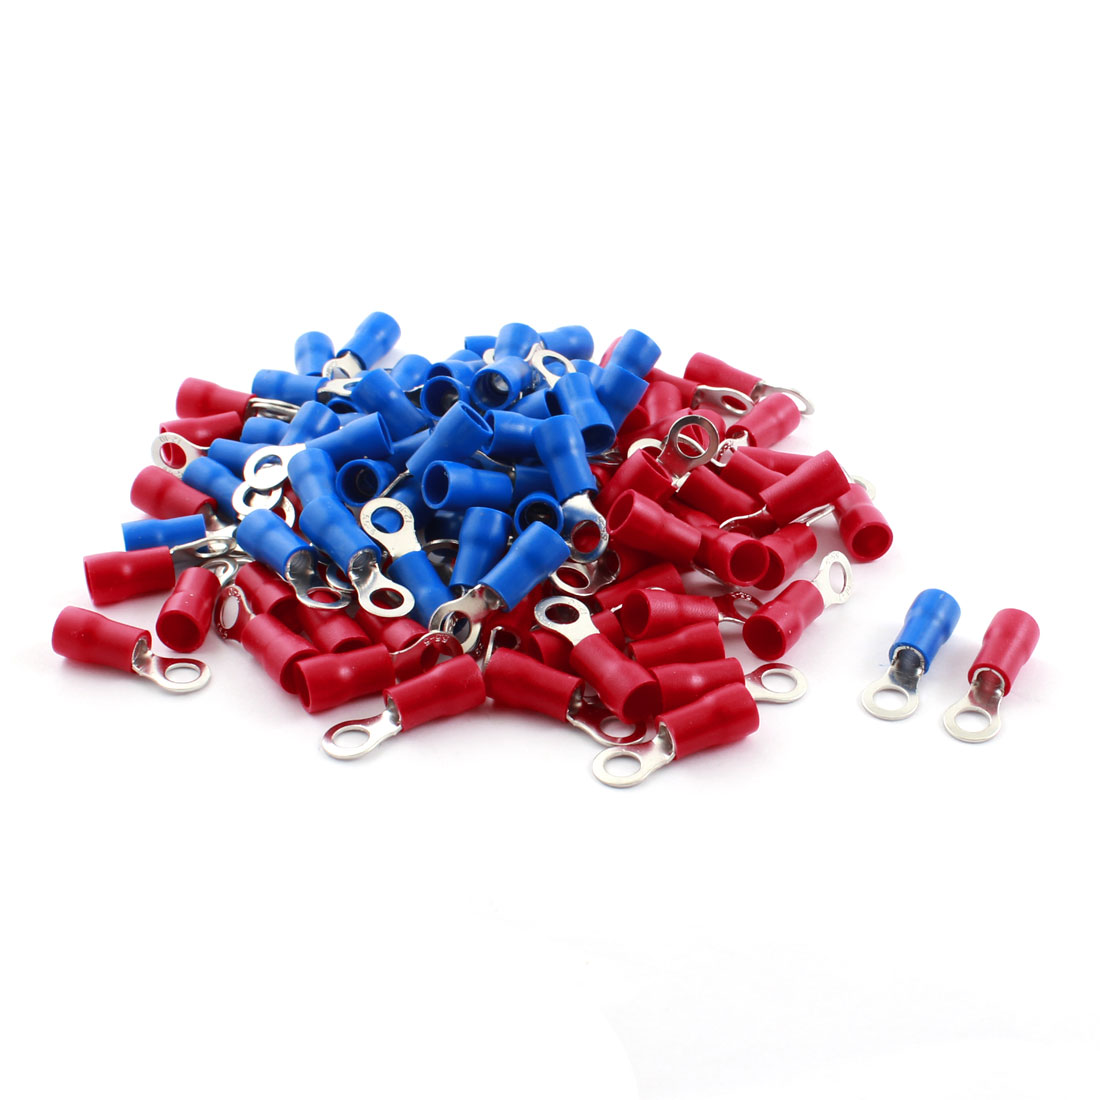 RV5.5-5 48A 6.4mm Dia Pre Insulated Ring Crimp Terminal Cable Connector Red Blue 12-10AWG 100 Pcs